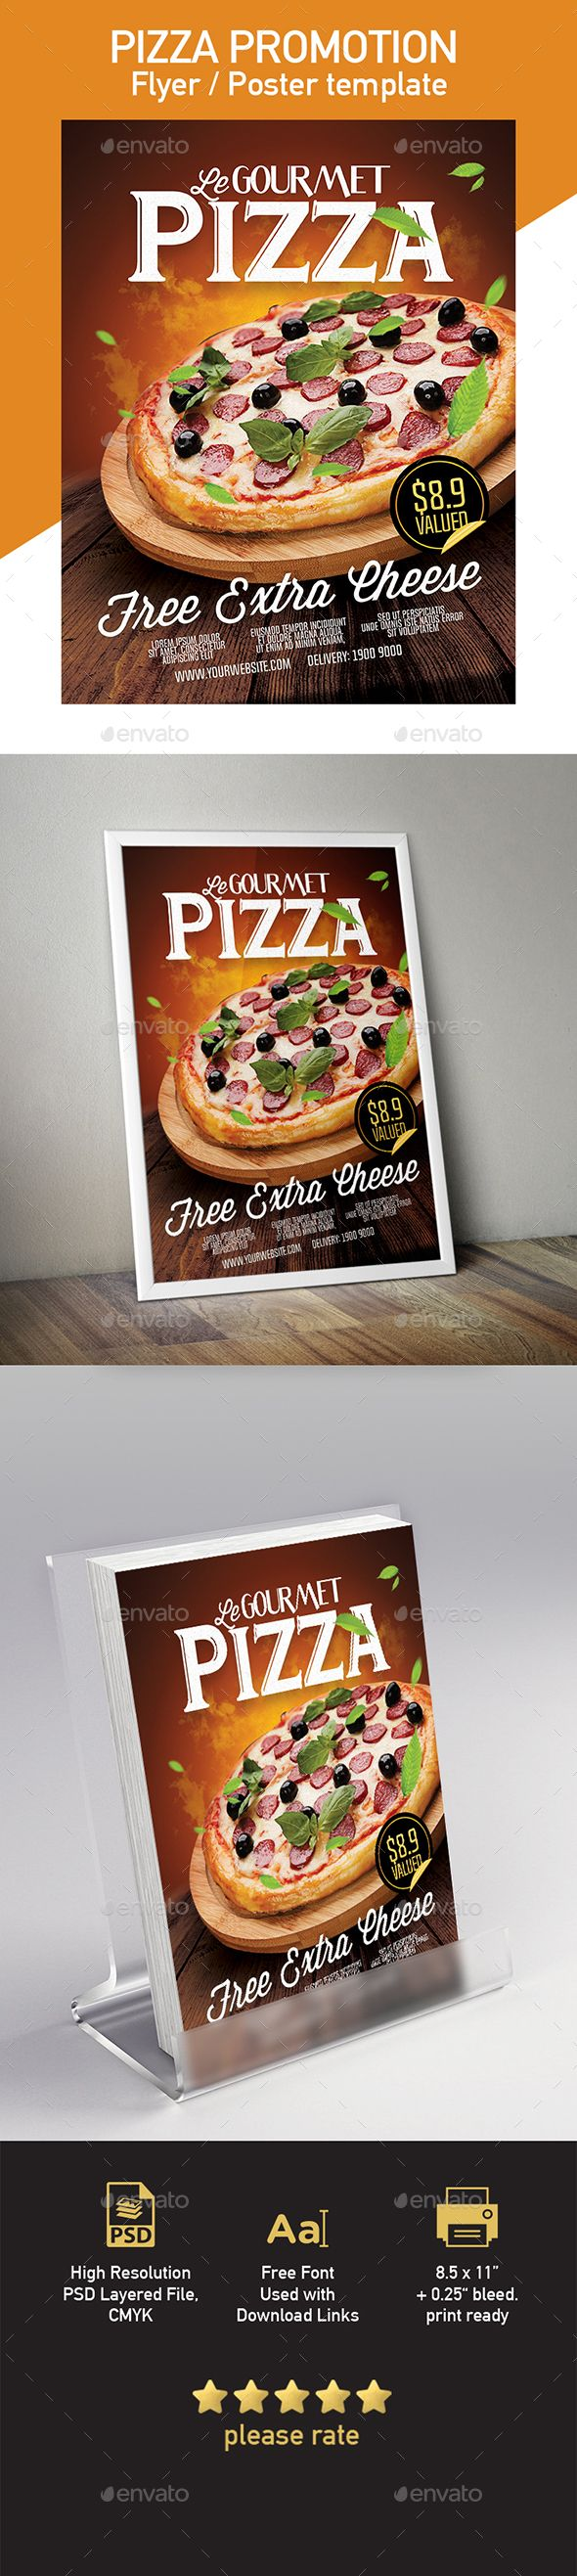 Pizza - Template for Poster / Flyer | Pinterest | Pizzas, Elementos ...